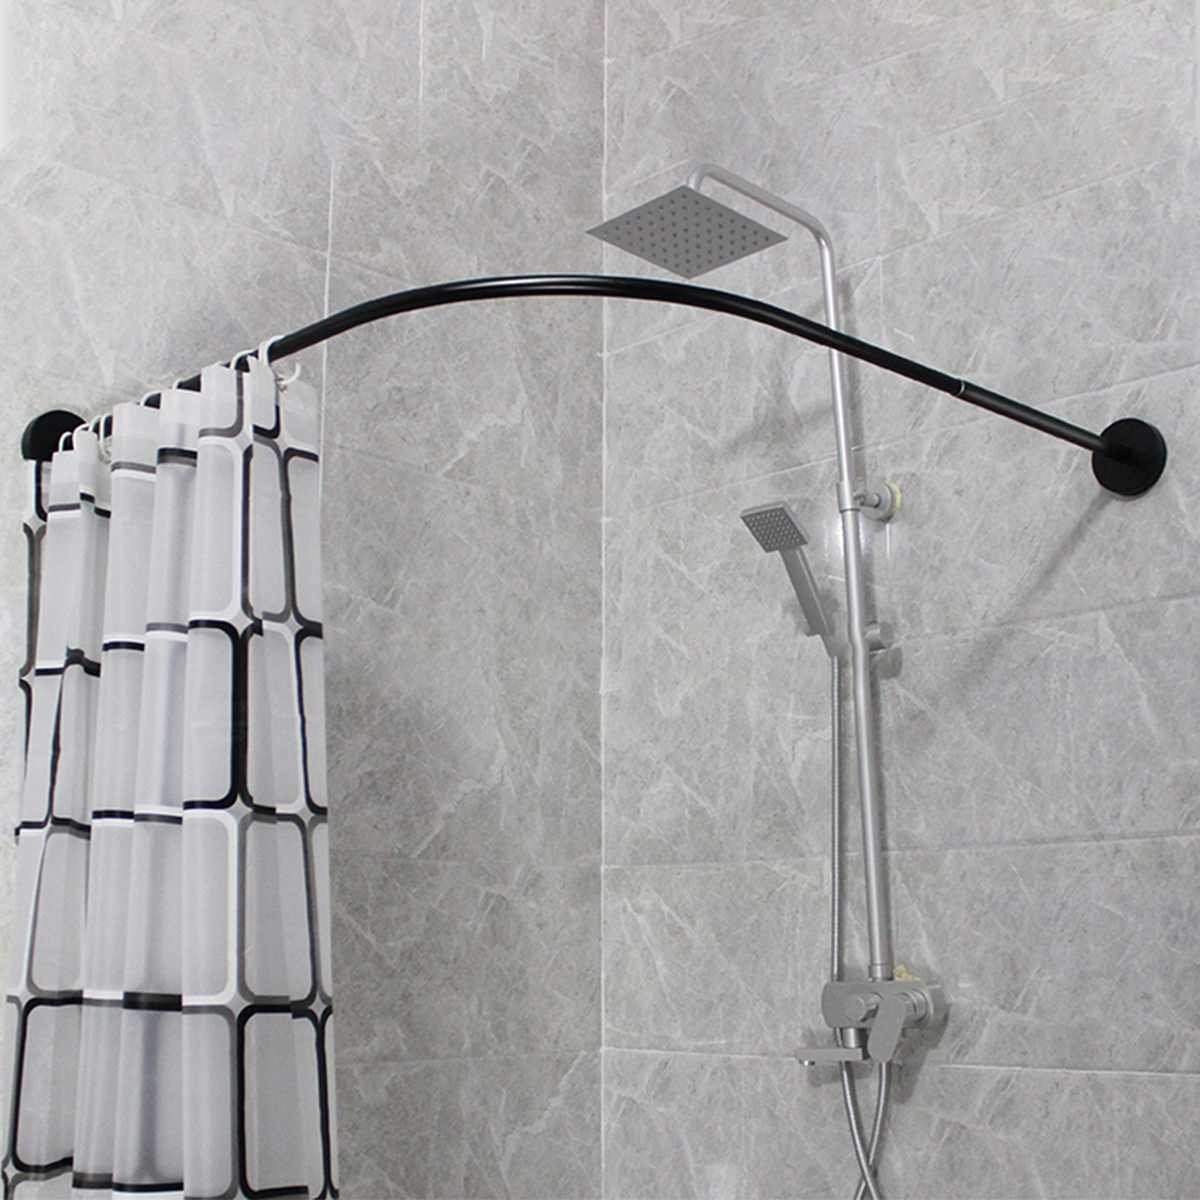 Curved Corner Shower Curtain Rod U Shaped Suction Cups